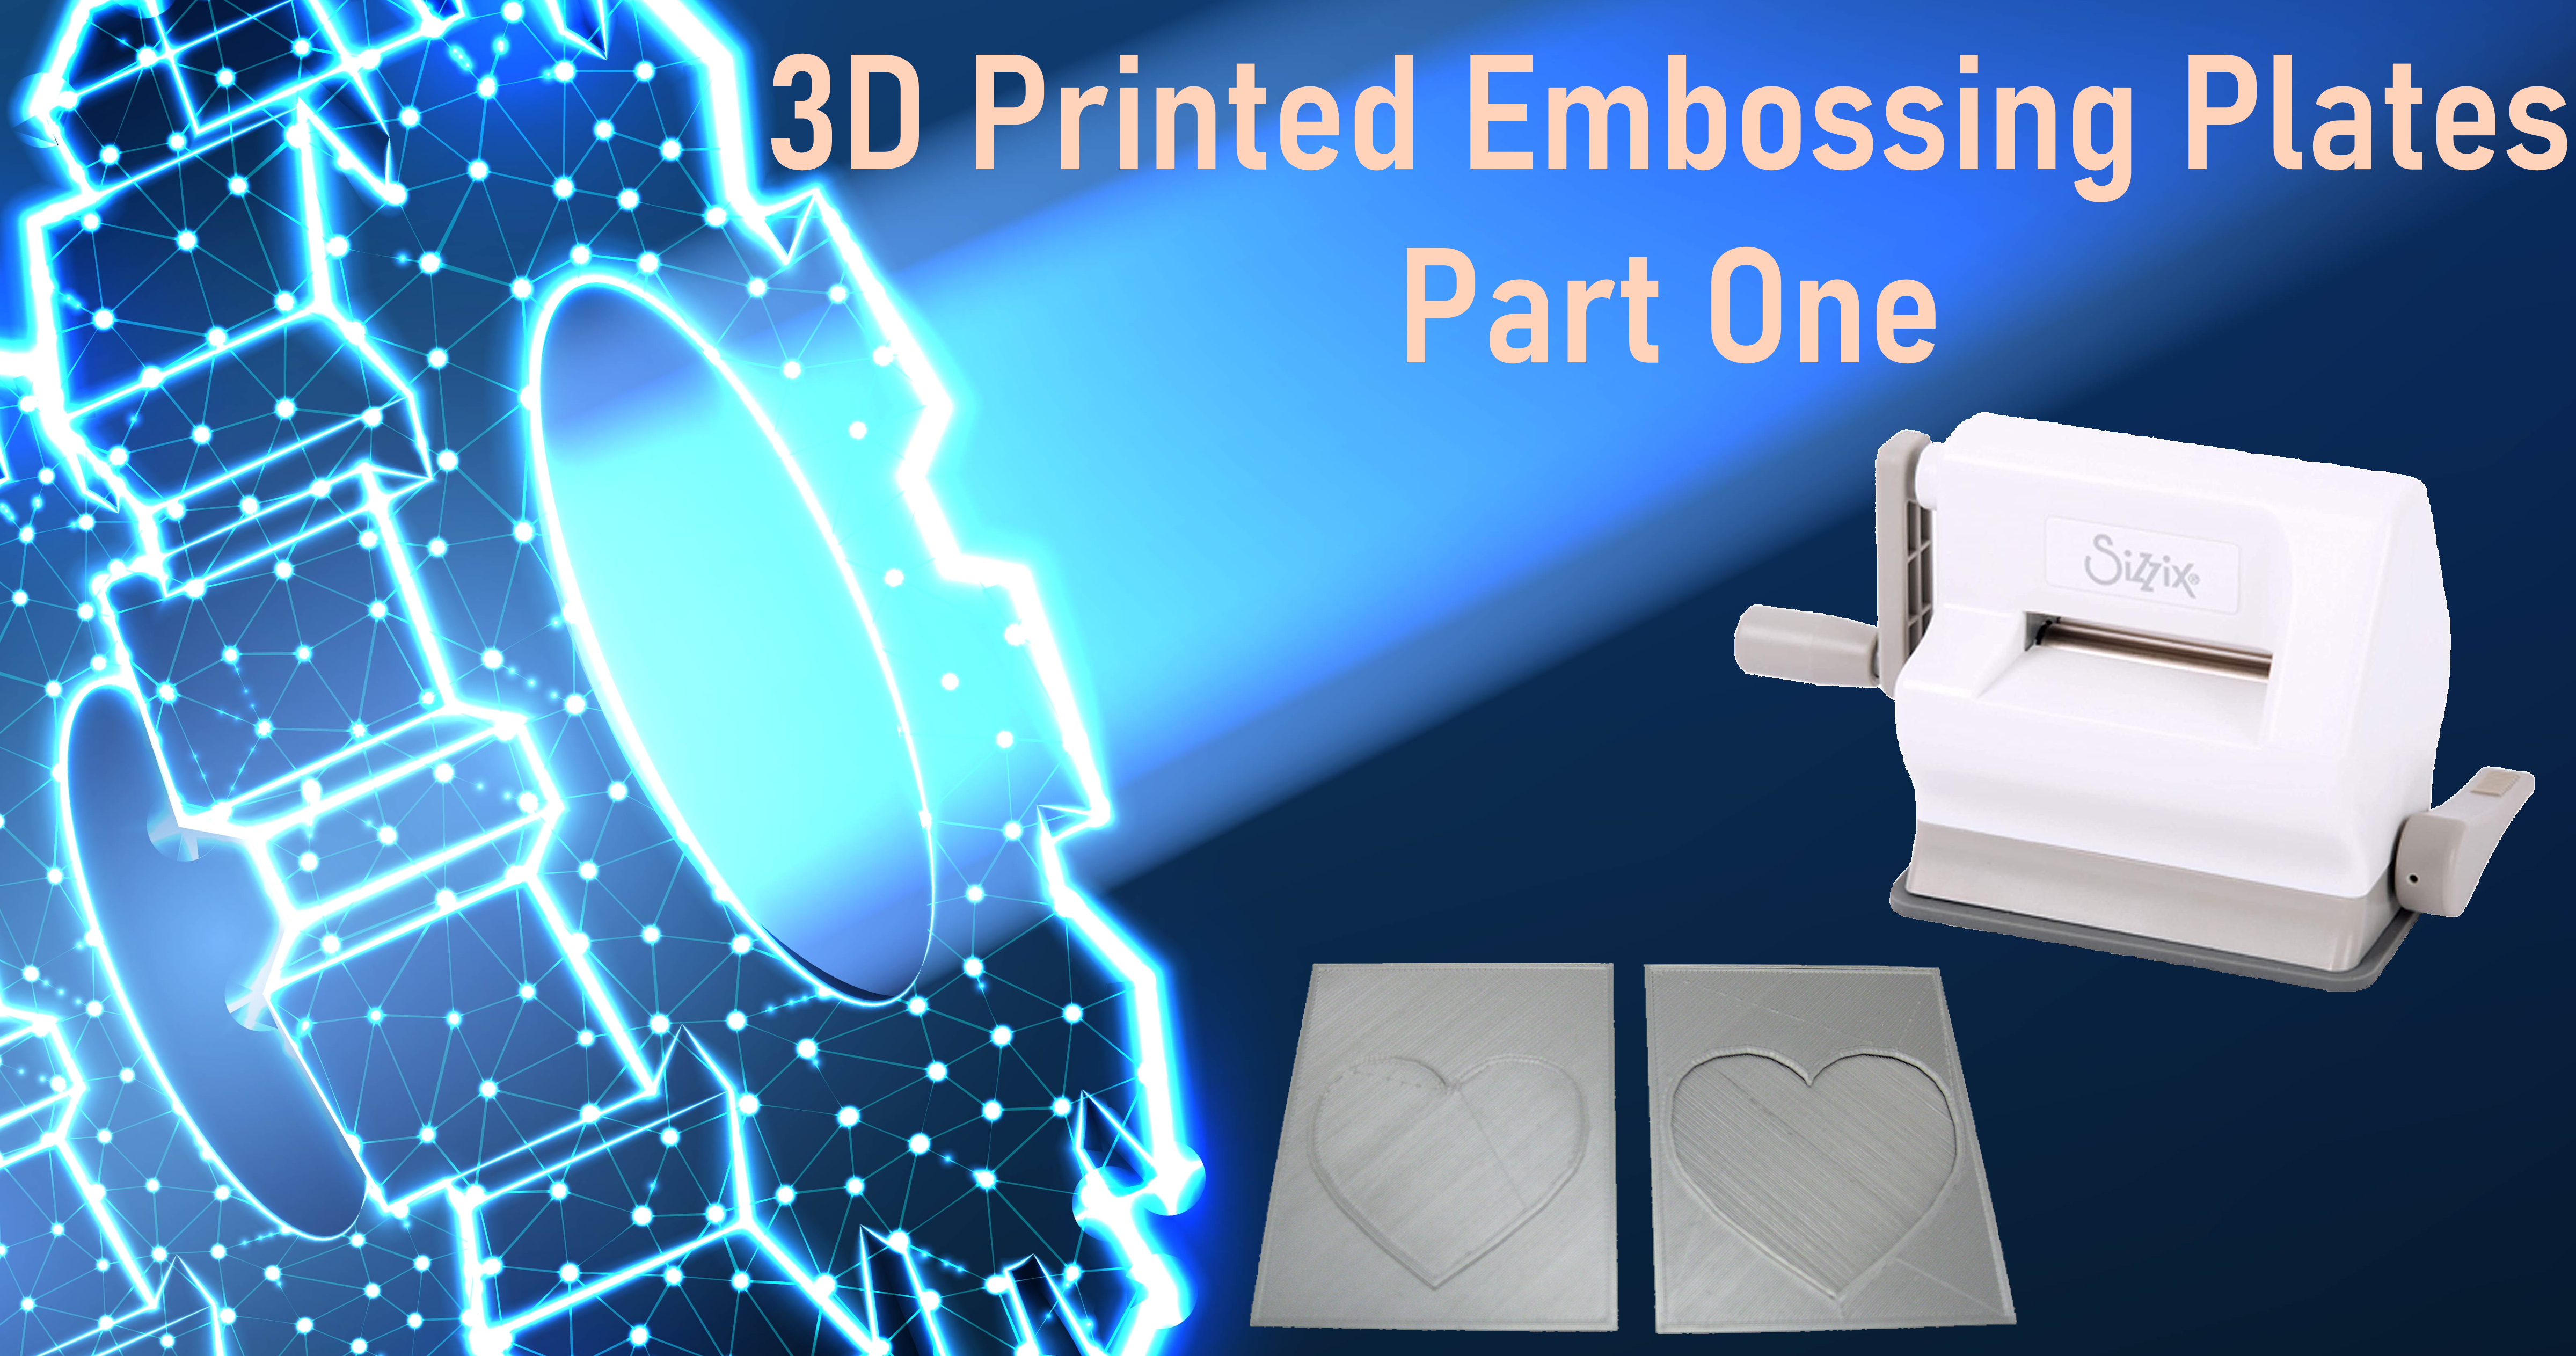 3D Printed Embossing Plates